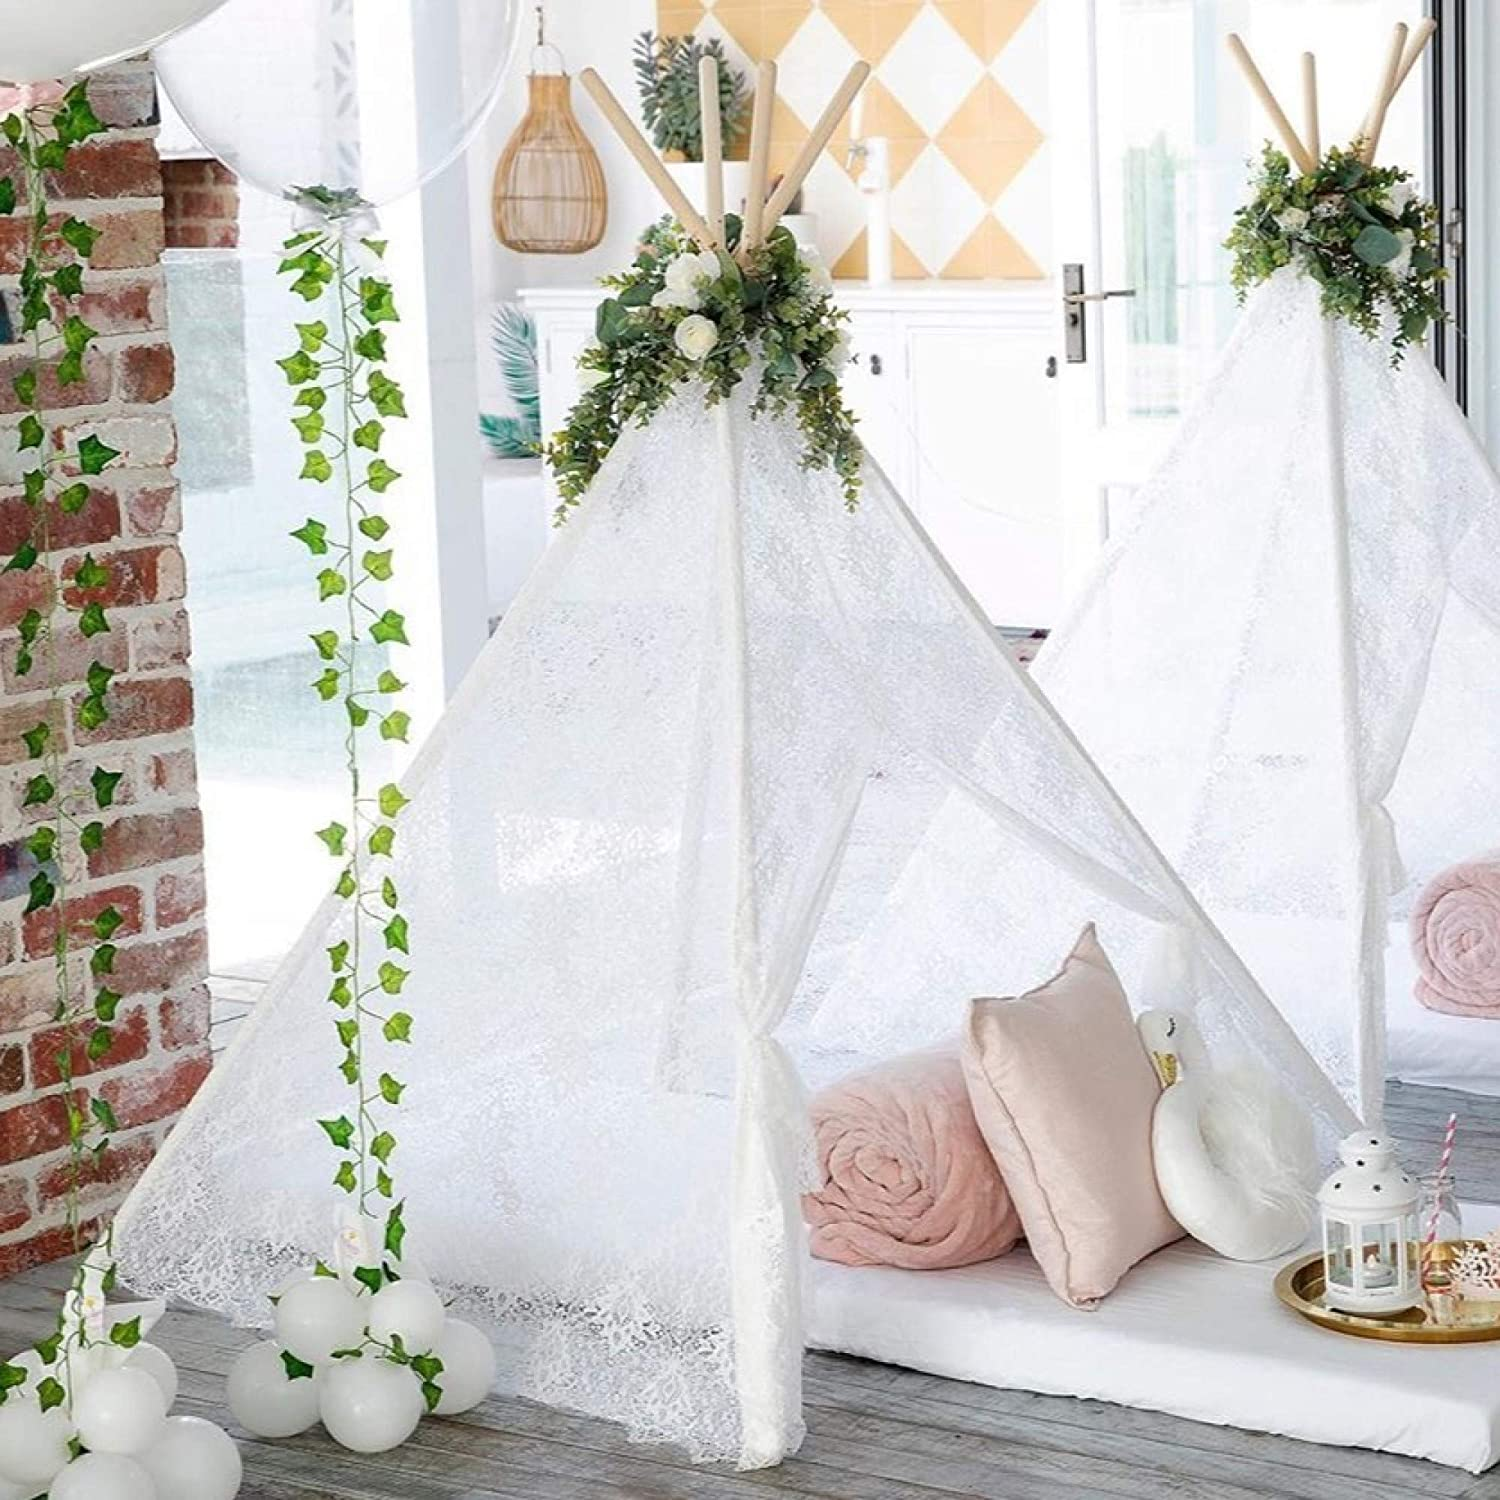 Kids Teepee Tent for Indoor Outdoor Children Play Tent Boho Lace Tipi (150cm Tall)